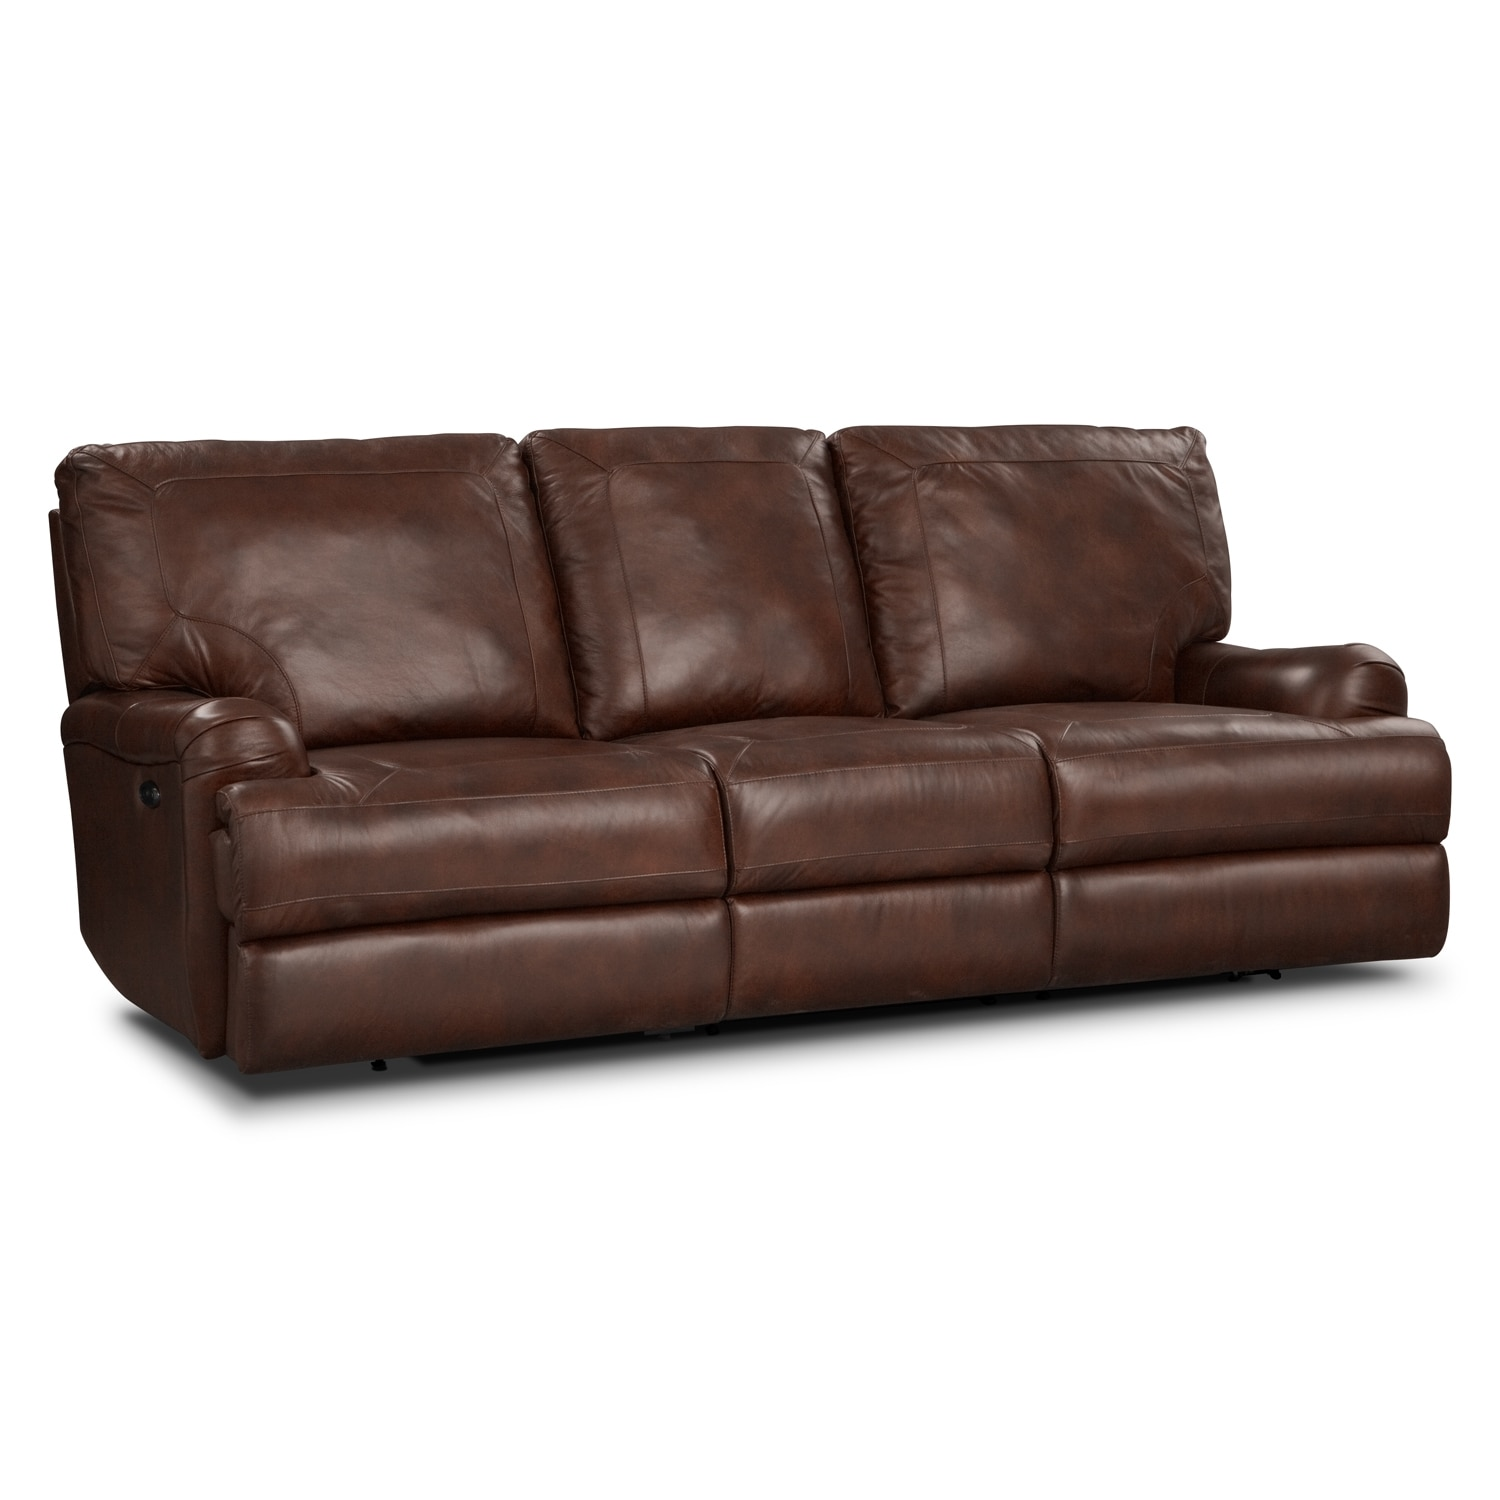 Kingsway leather power reclining sofa value city furniture Leather loveseat recliners